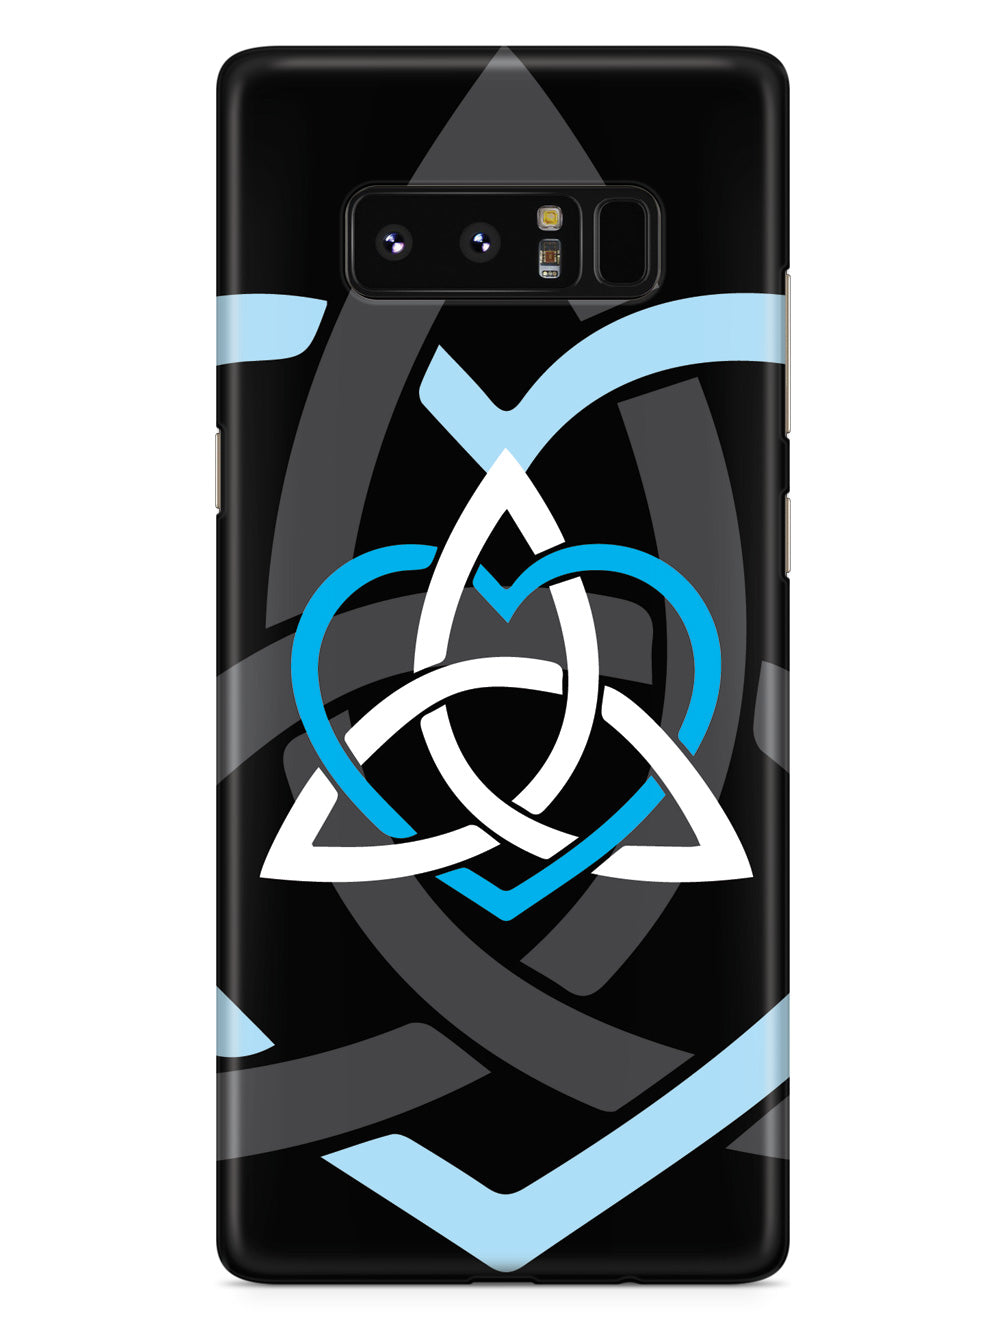 Celtic Sisters Knot - Light Blue - Black Case